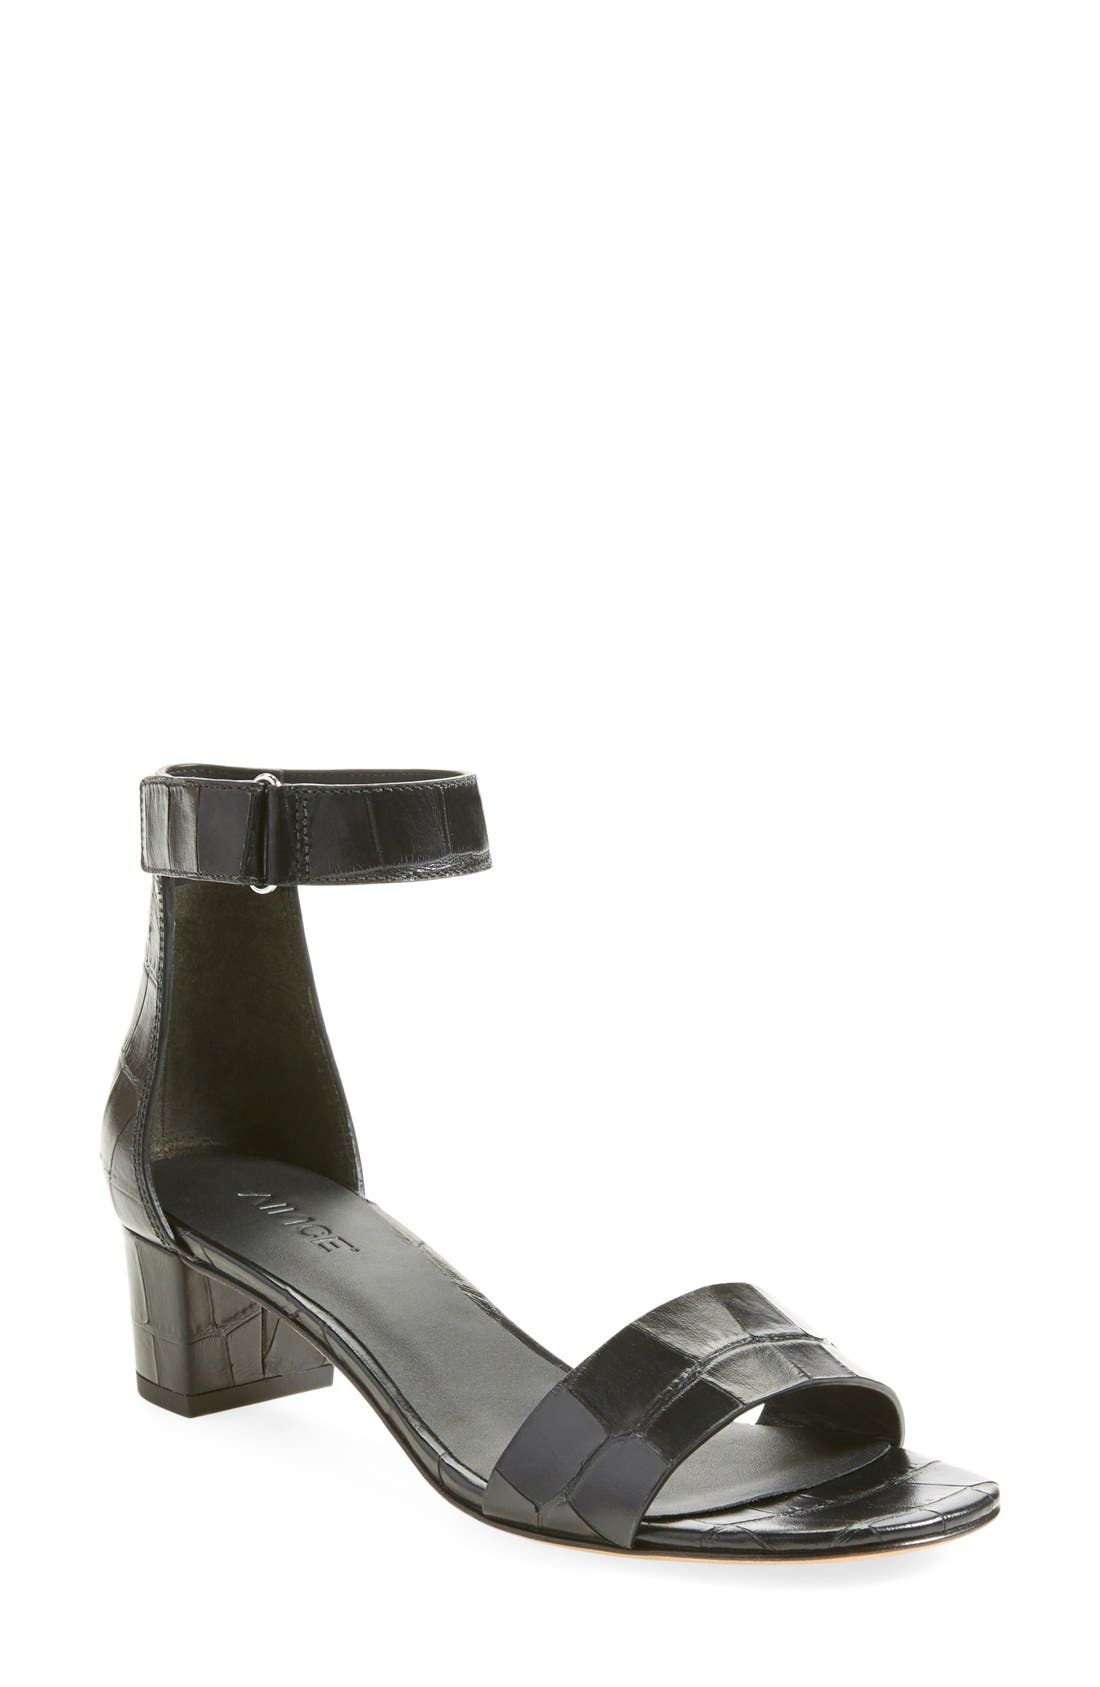 Main Image - Vince 'Rita' Leather Ankle Strap Sandal (Women)